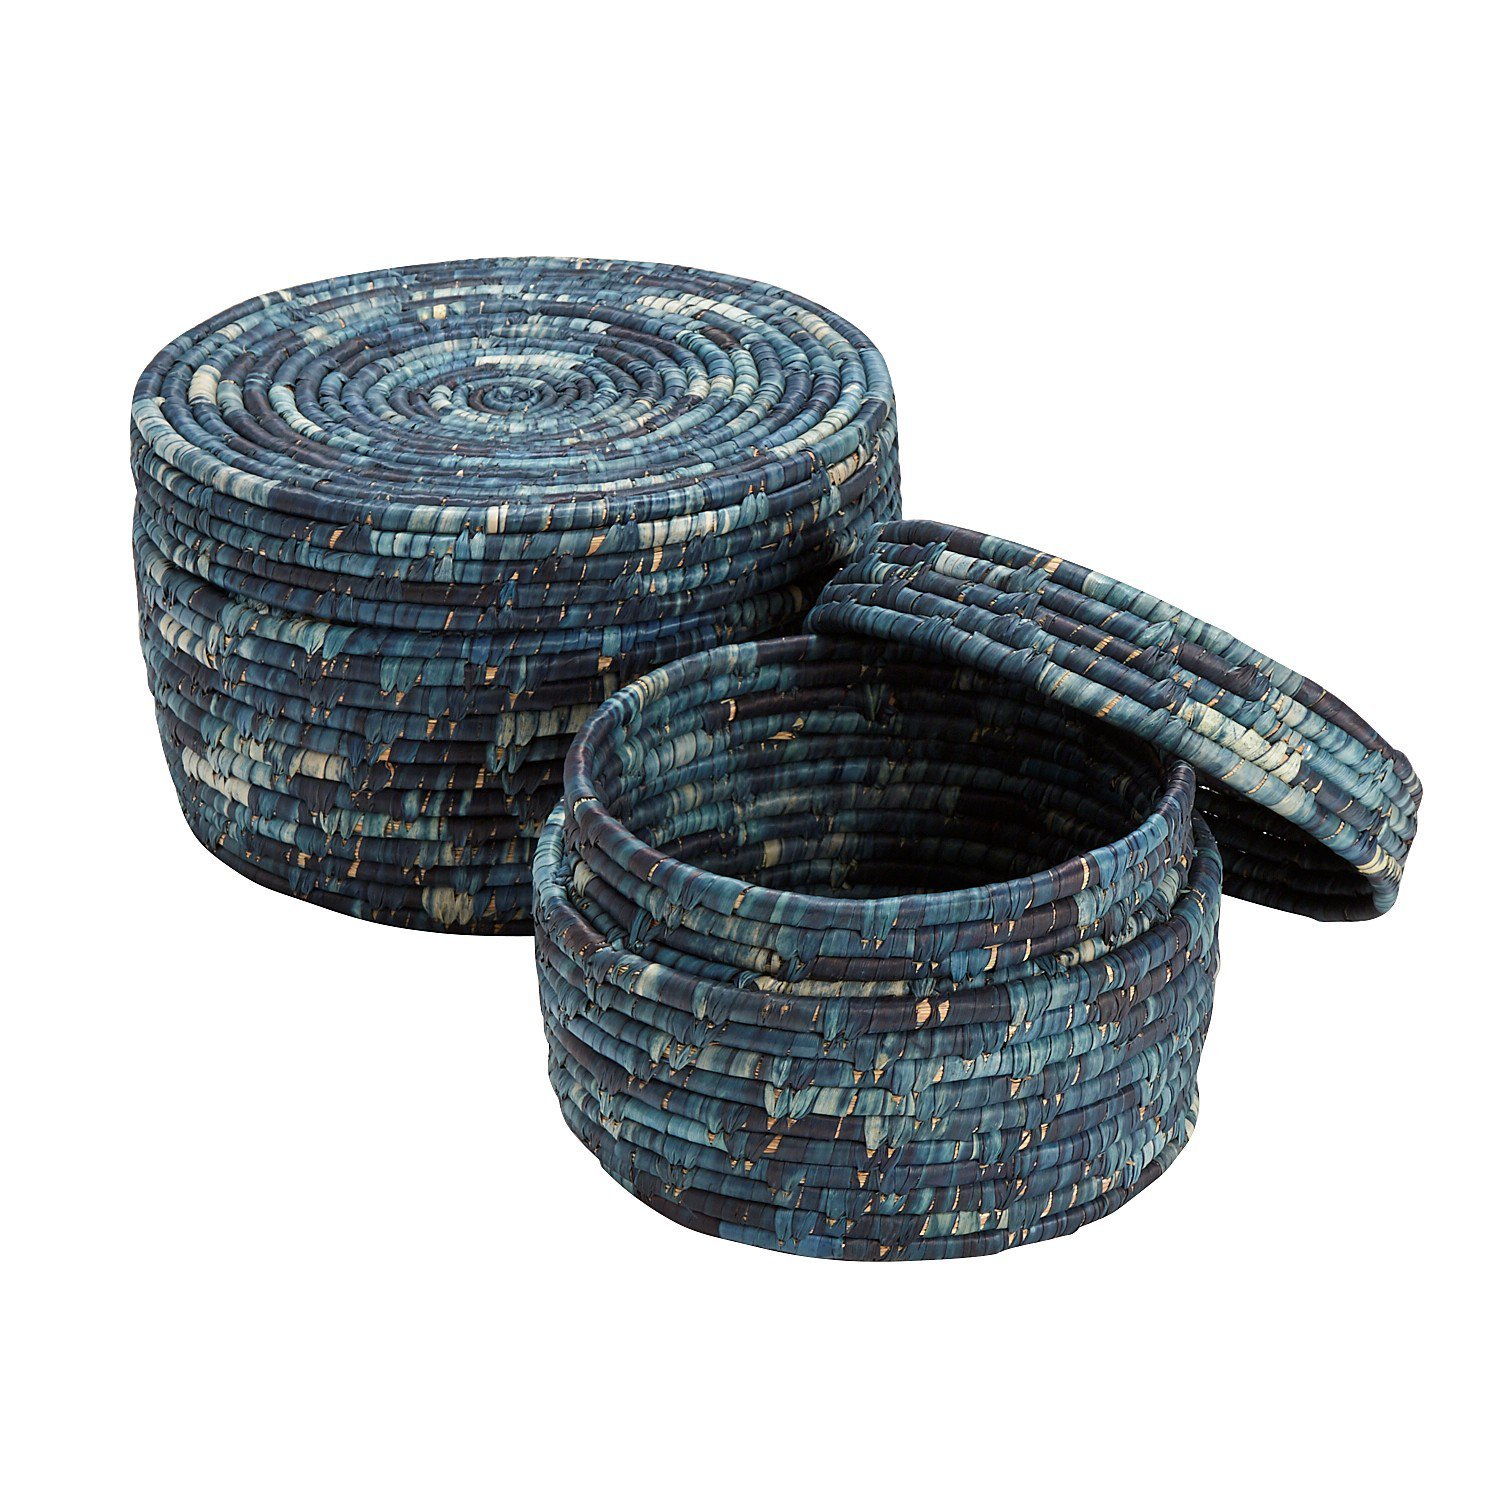 Ten Thousand Villages Pair Of Round 12'' And 9'' Woven Kaisa Baskets With Lids 'Ocean Blue Basket Set'